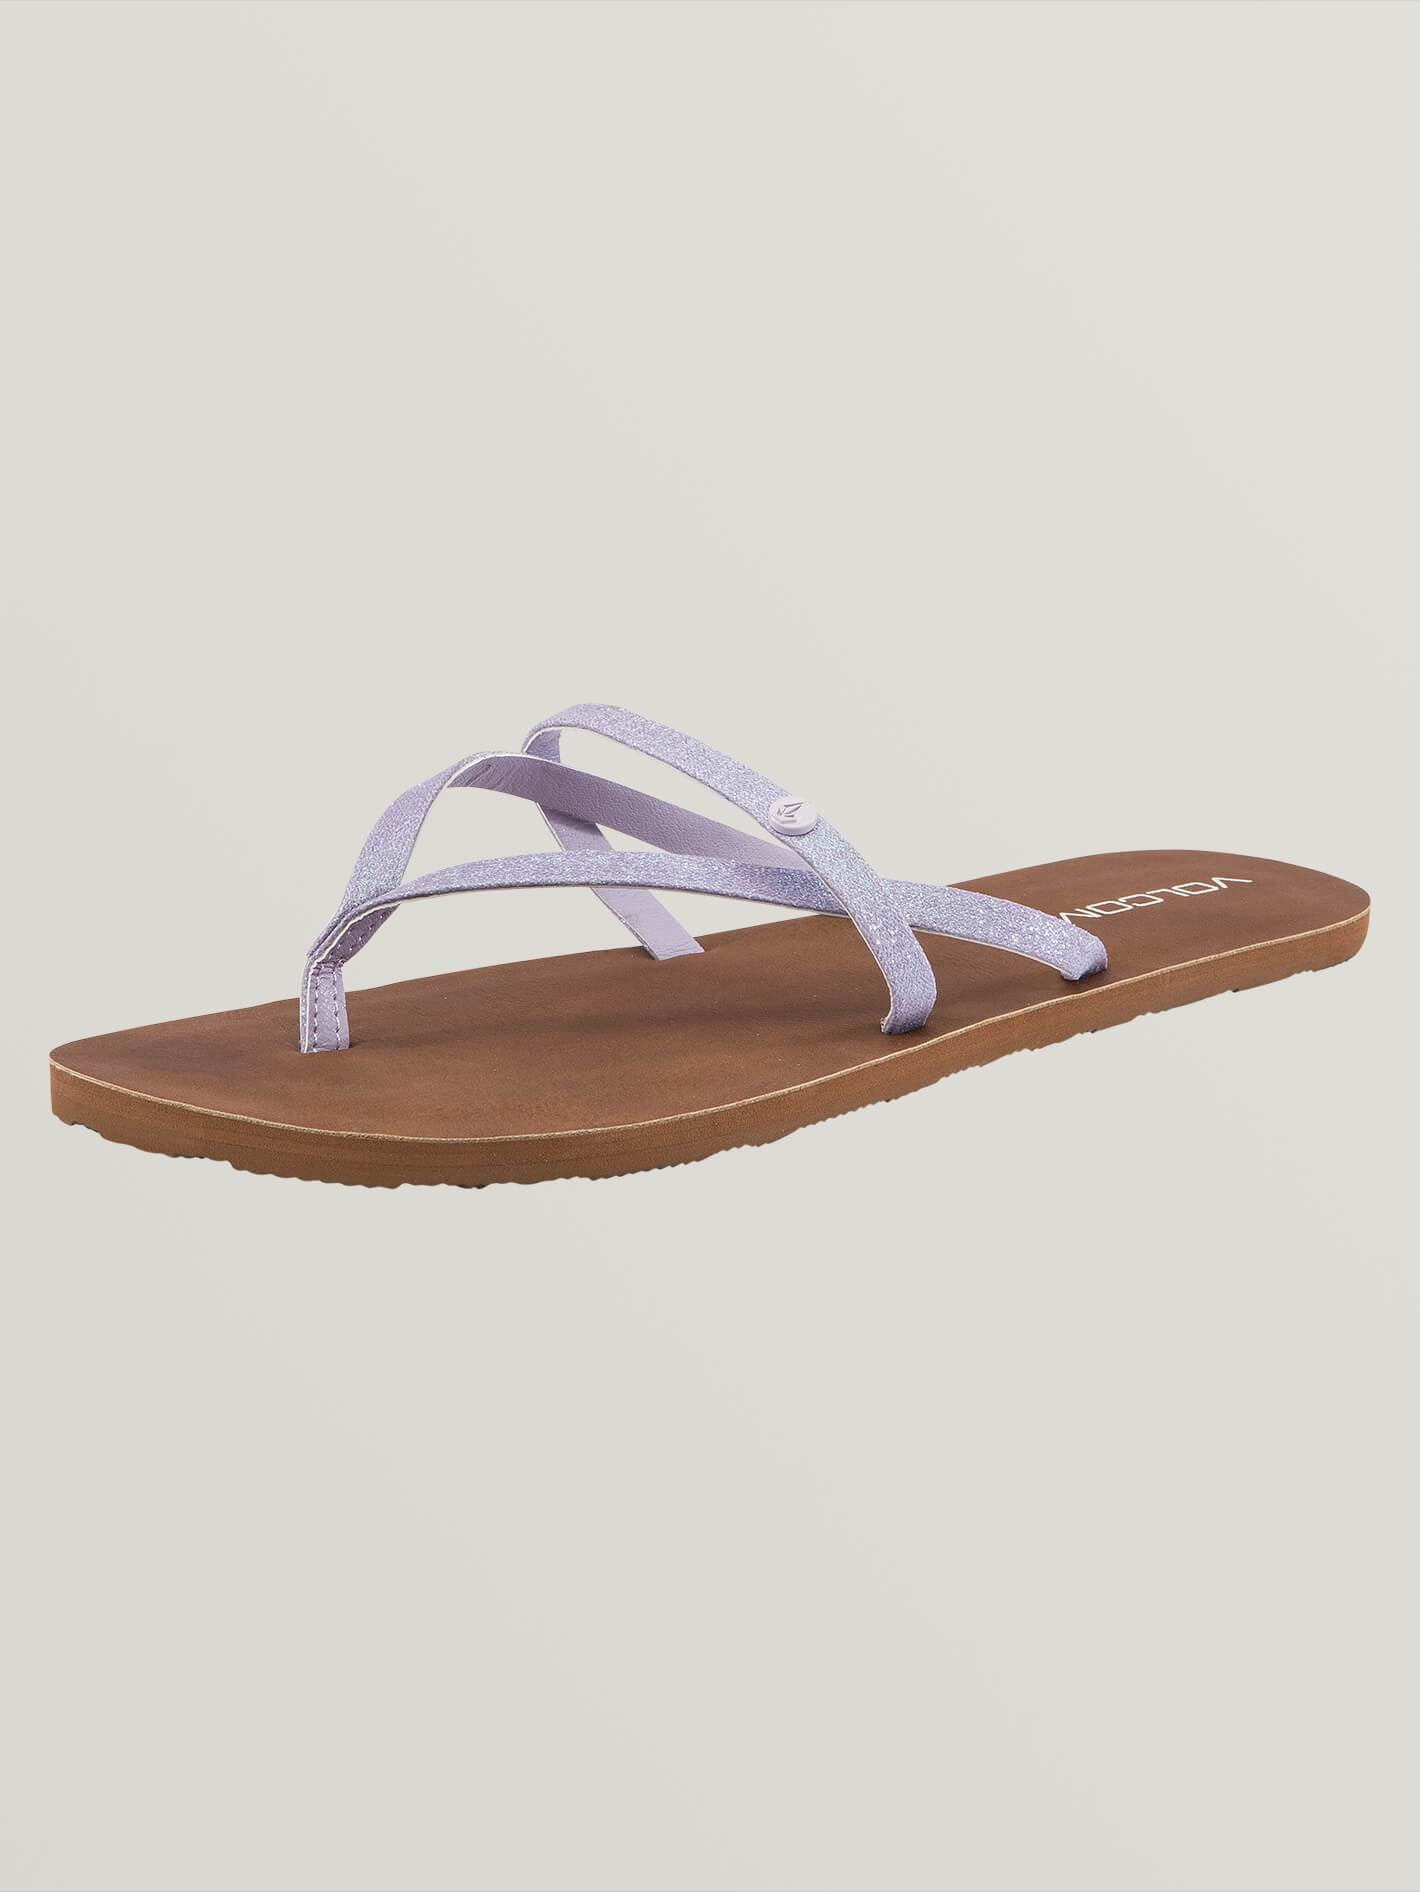 787ad0590 Womens Shoes Sandals – Volcom Canada